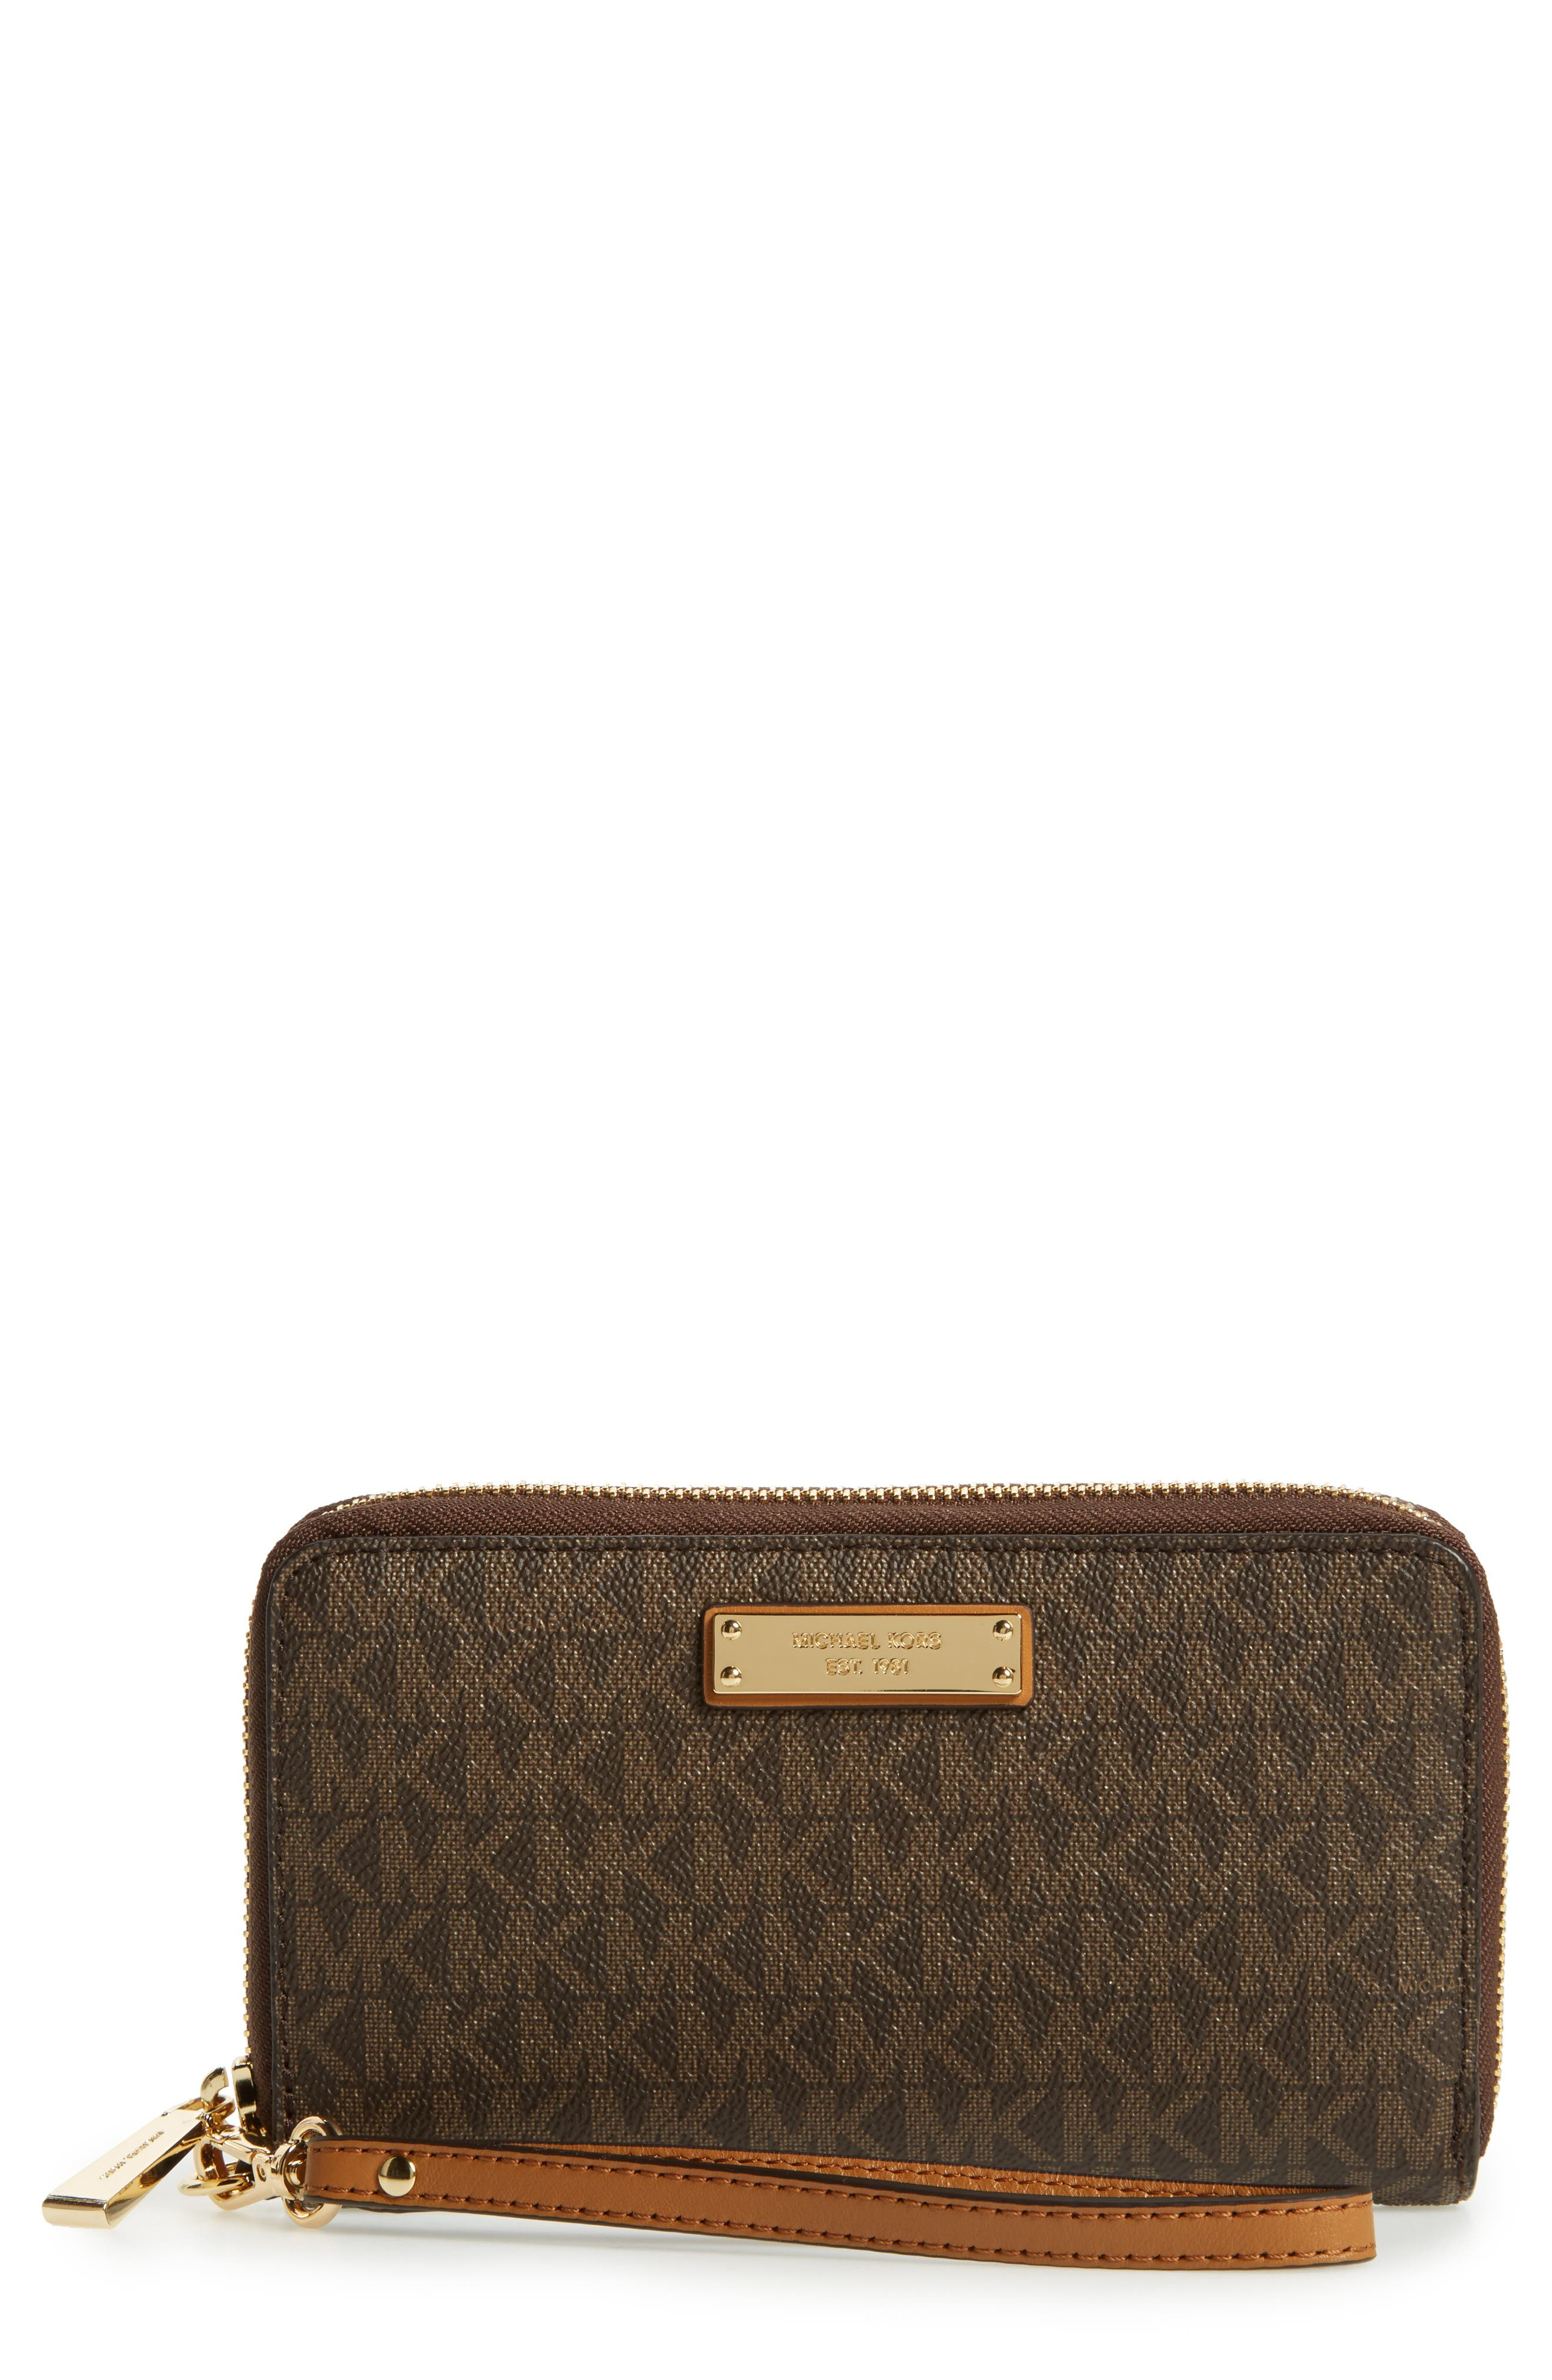 MICHAEL Michael Kors Multifunction Phone Case